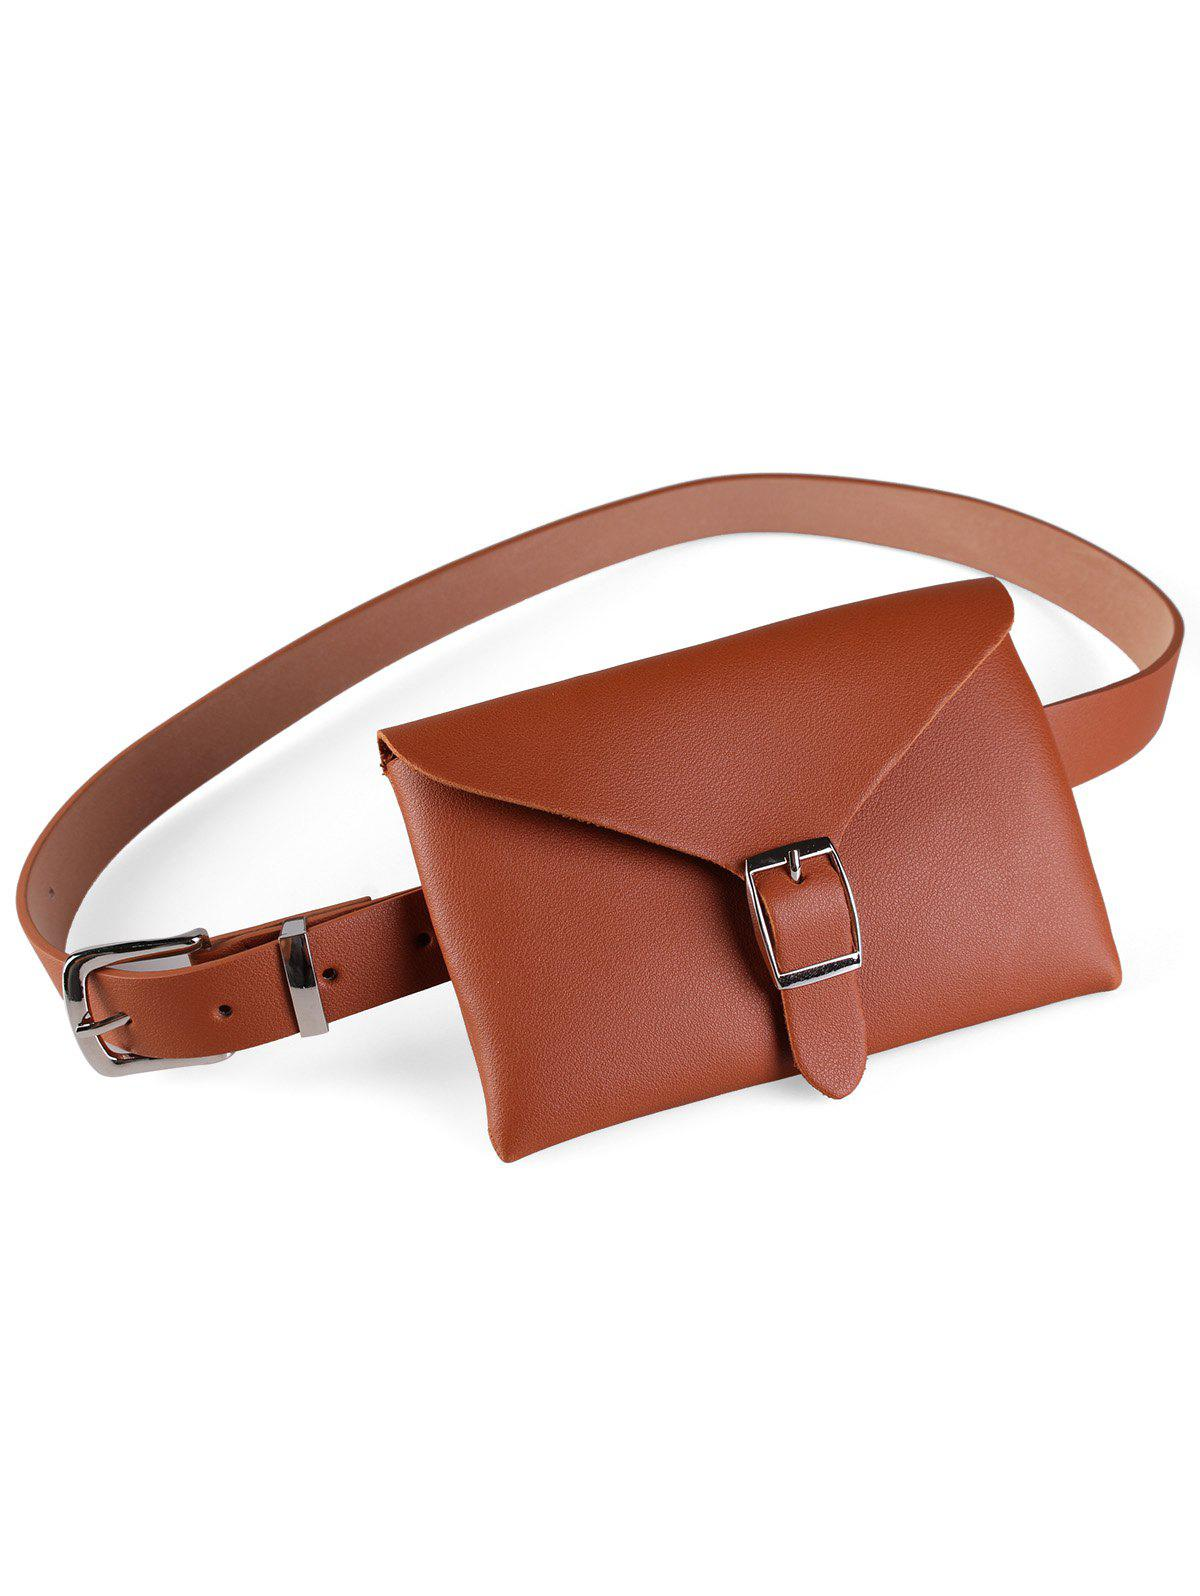 Fanny Pack Decorative Faux Leather Belt Bag - RUST